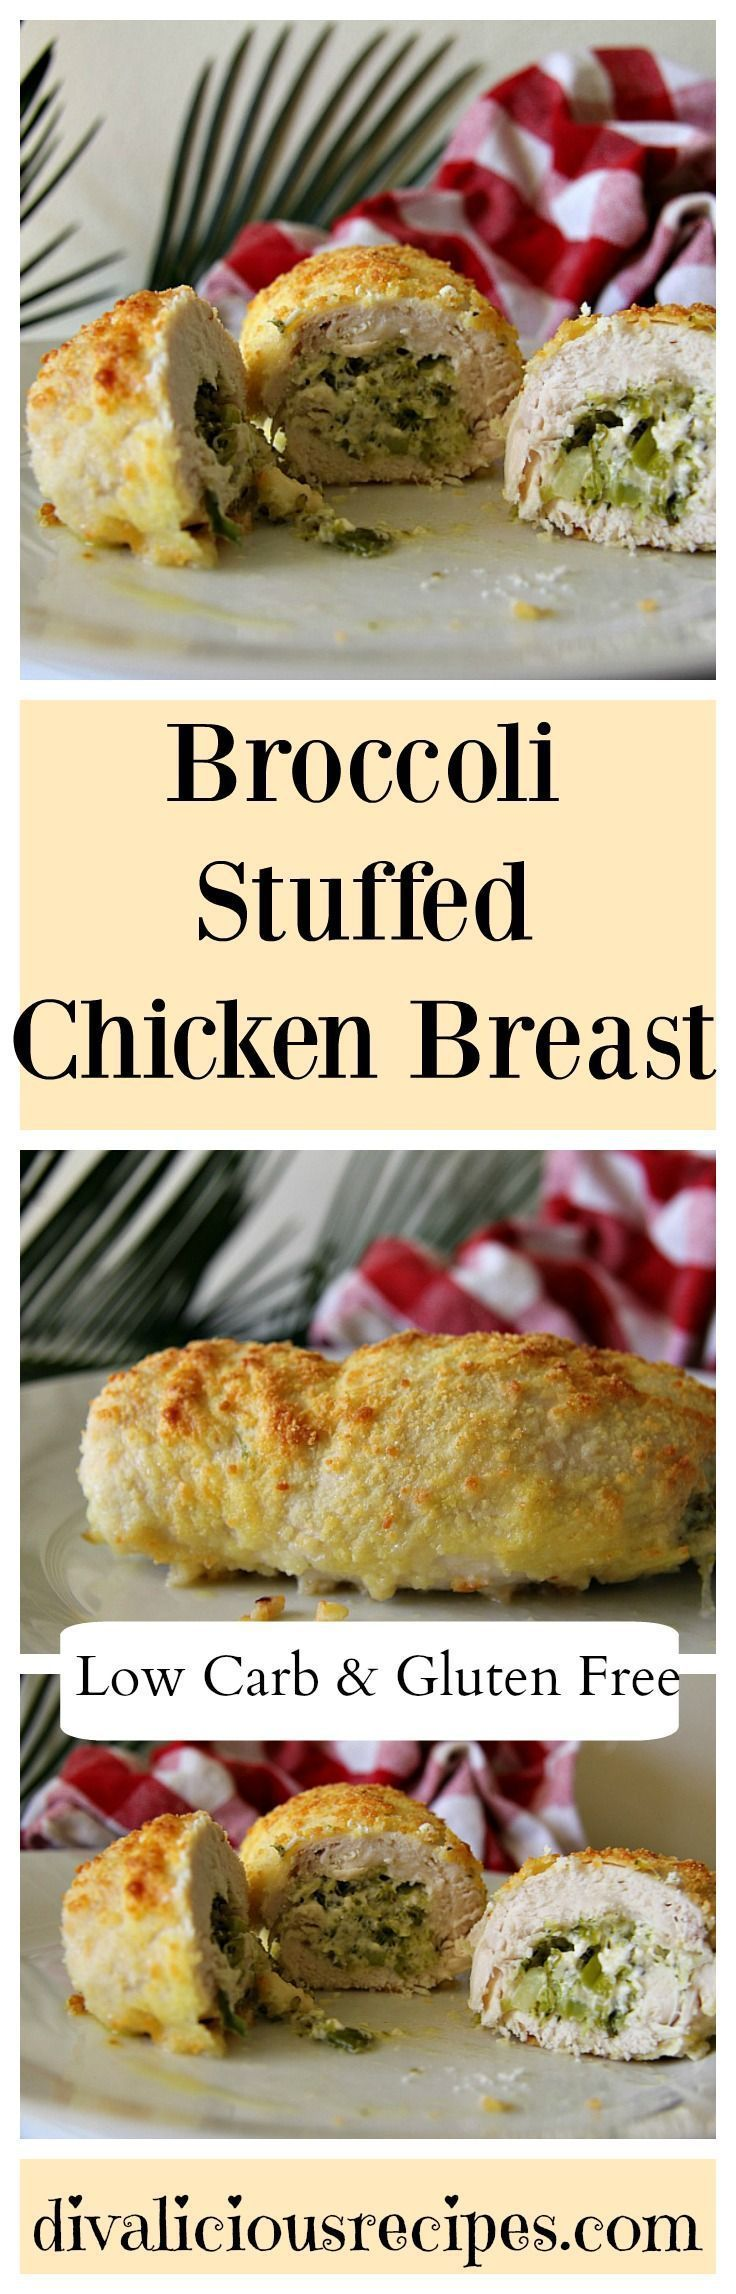 A broccoli stuffed chicken breast recipe that has a filling of broccoli and feta cheese. The breast is then coated with Parmesan cheese. Recipe:  http://divaliciousrecipes.com/2017/03/02/broccoli-stuffed-chicken-breast/